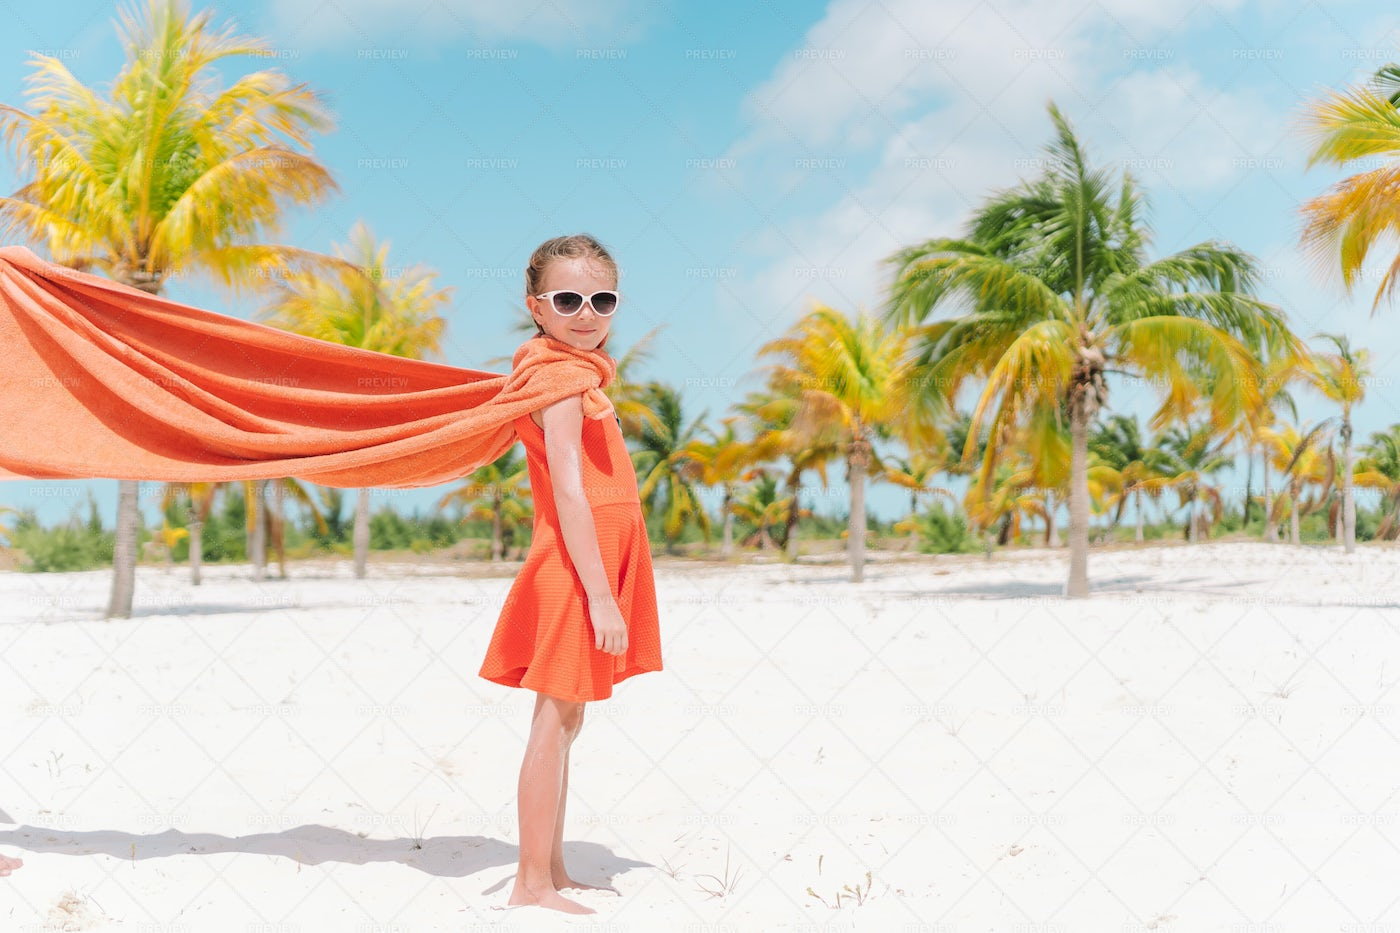 Kid With A Towel Cape: Stock Photos